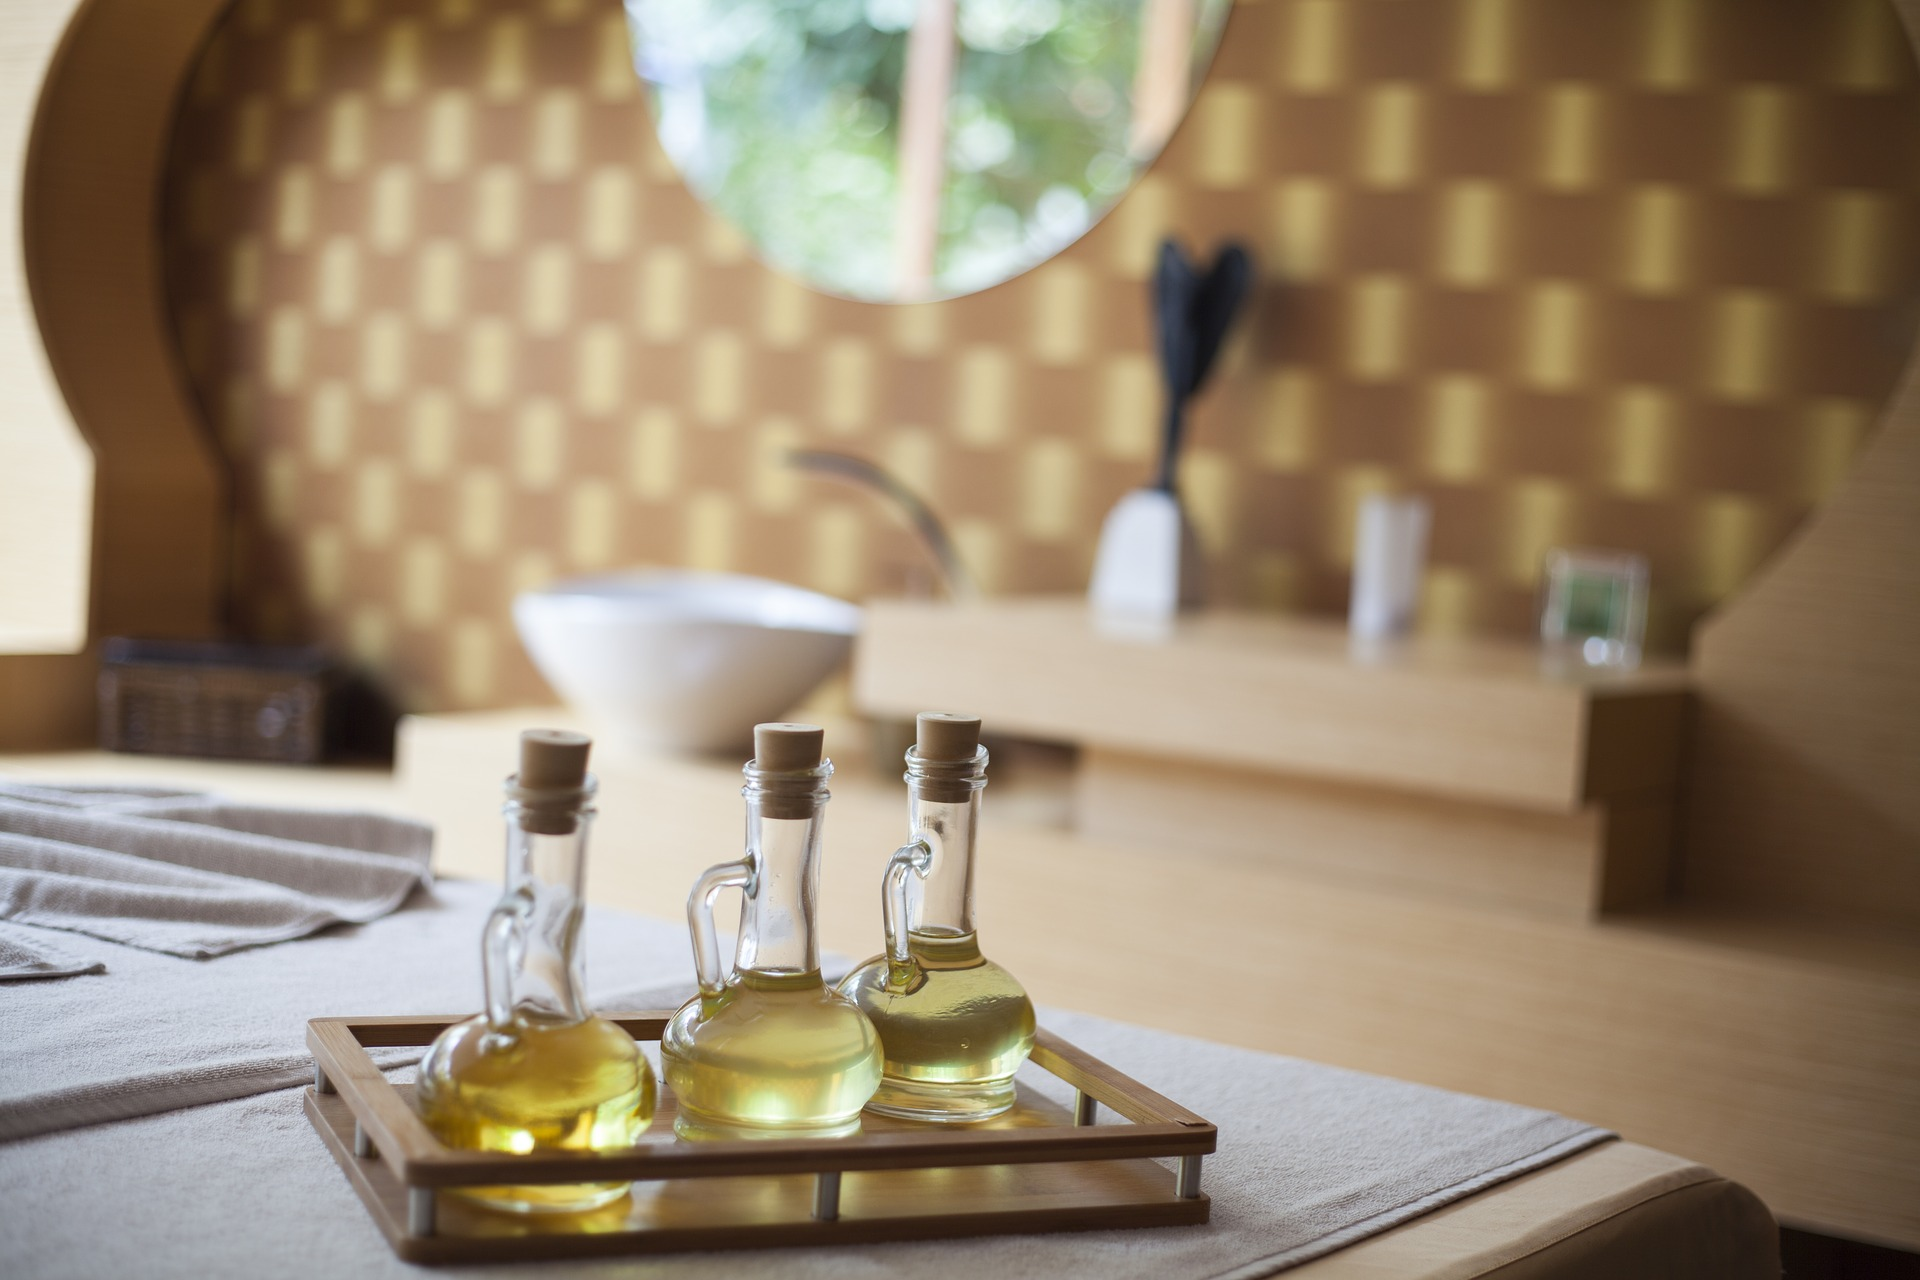 massage oils at hotel spa - couples massage